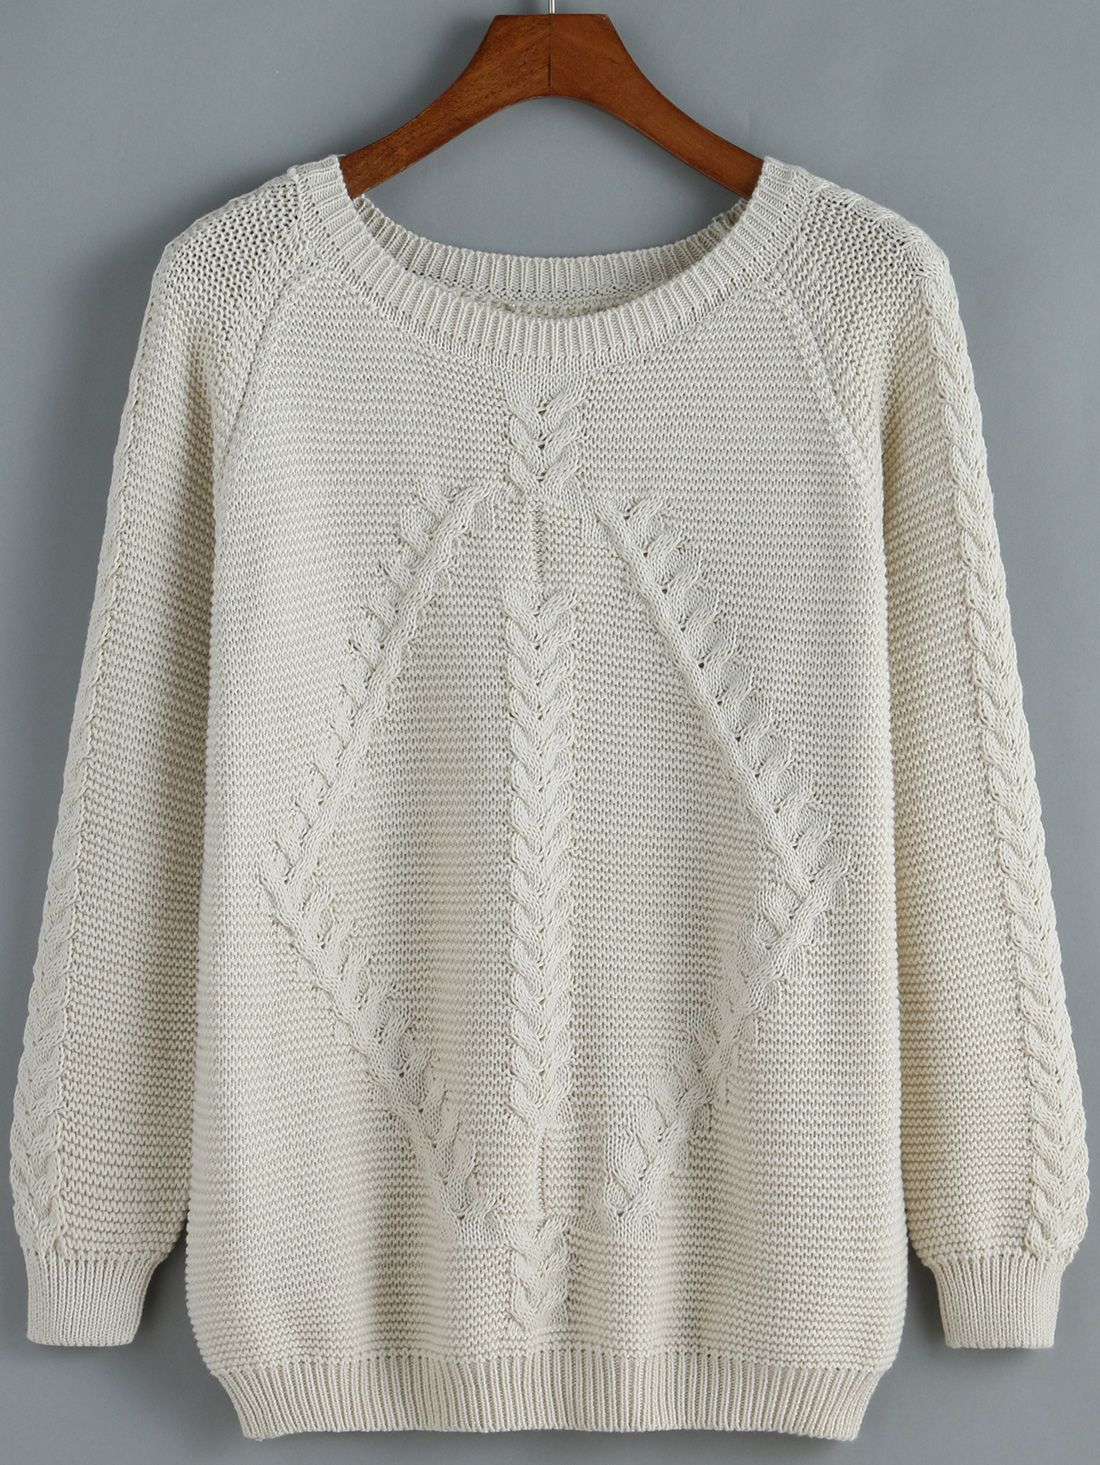 80641eb16d1aad Apricot Round Neck Cable Knit Loose Sweater